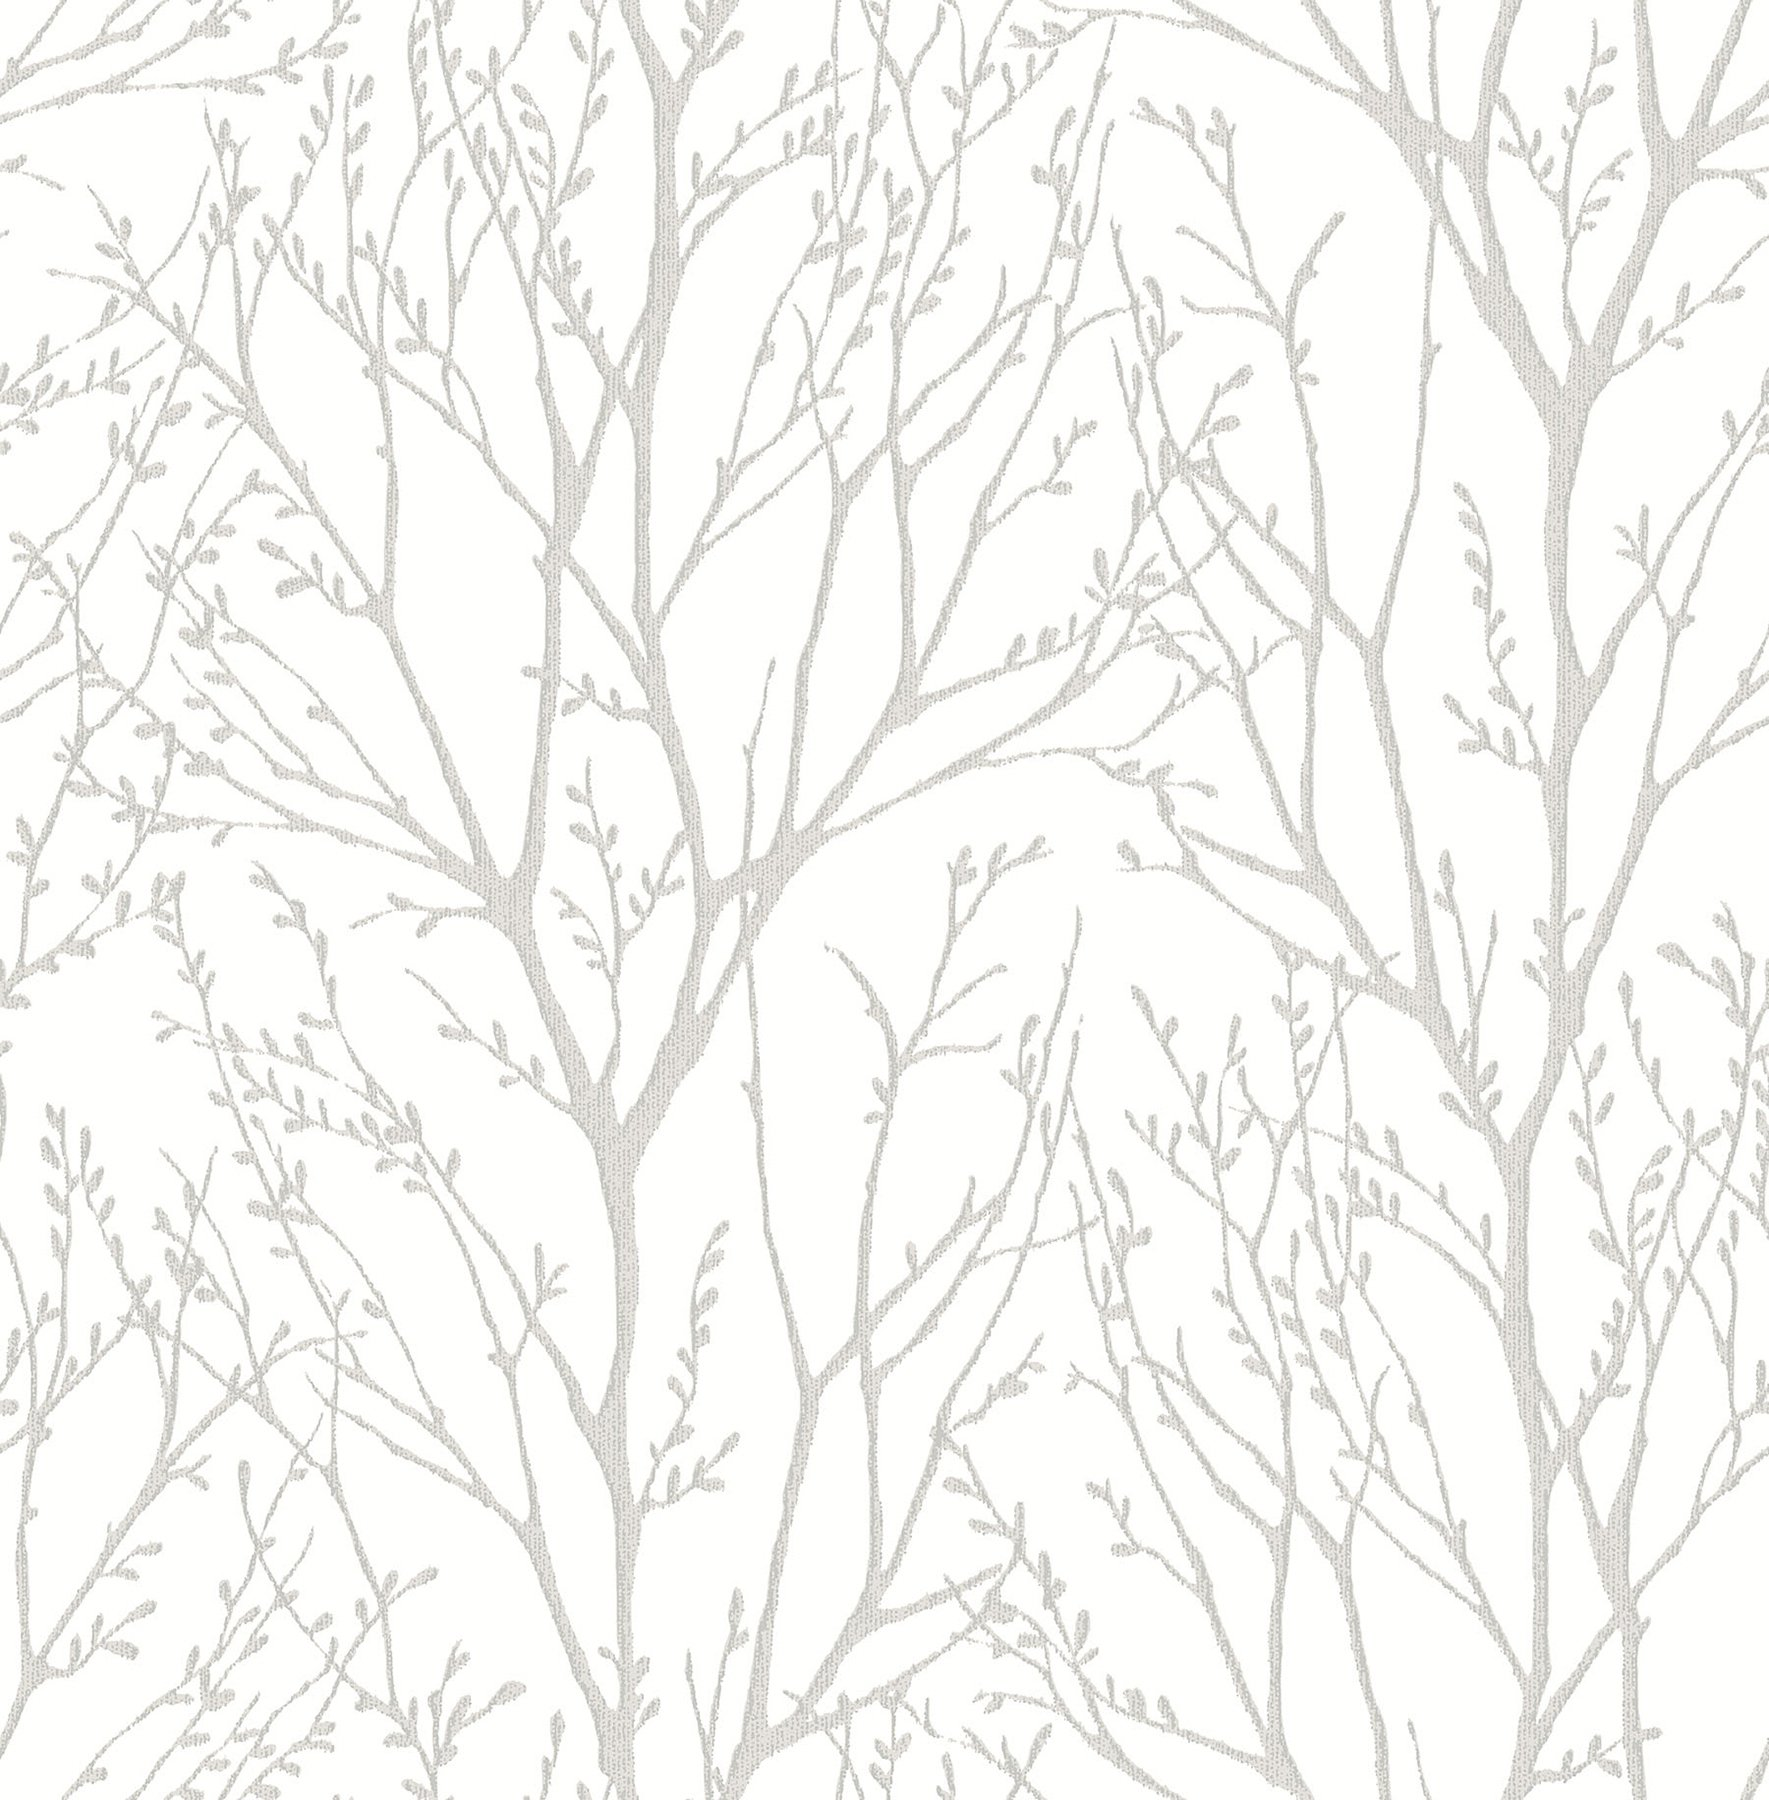 NuWallpaper NU2394 Treetops Peel & Stick Wallpaper, White & Off-White by NuWallpaper